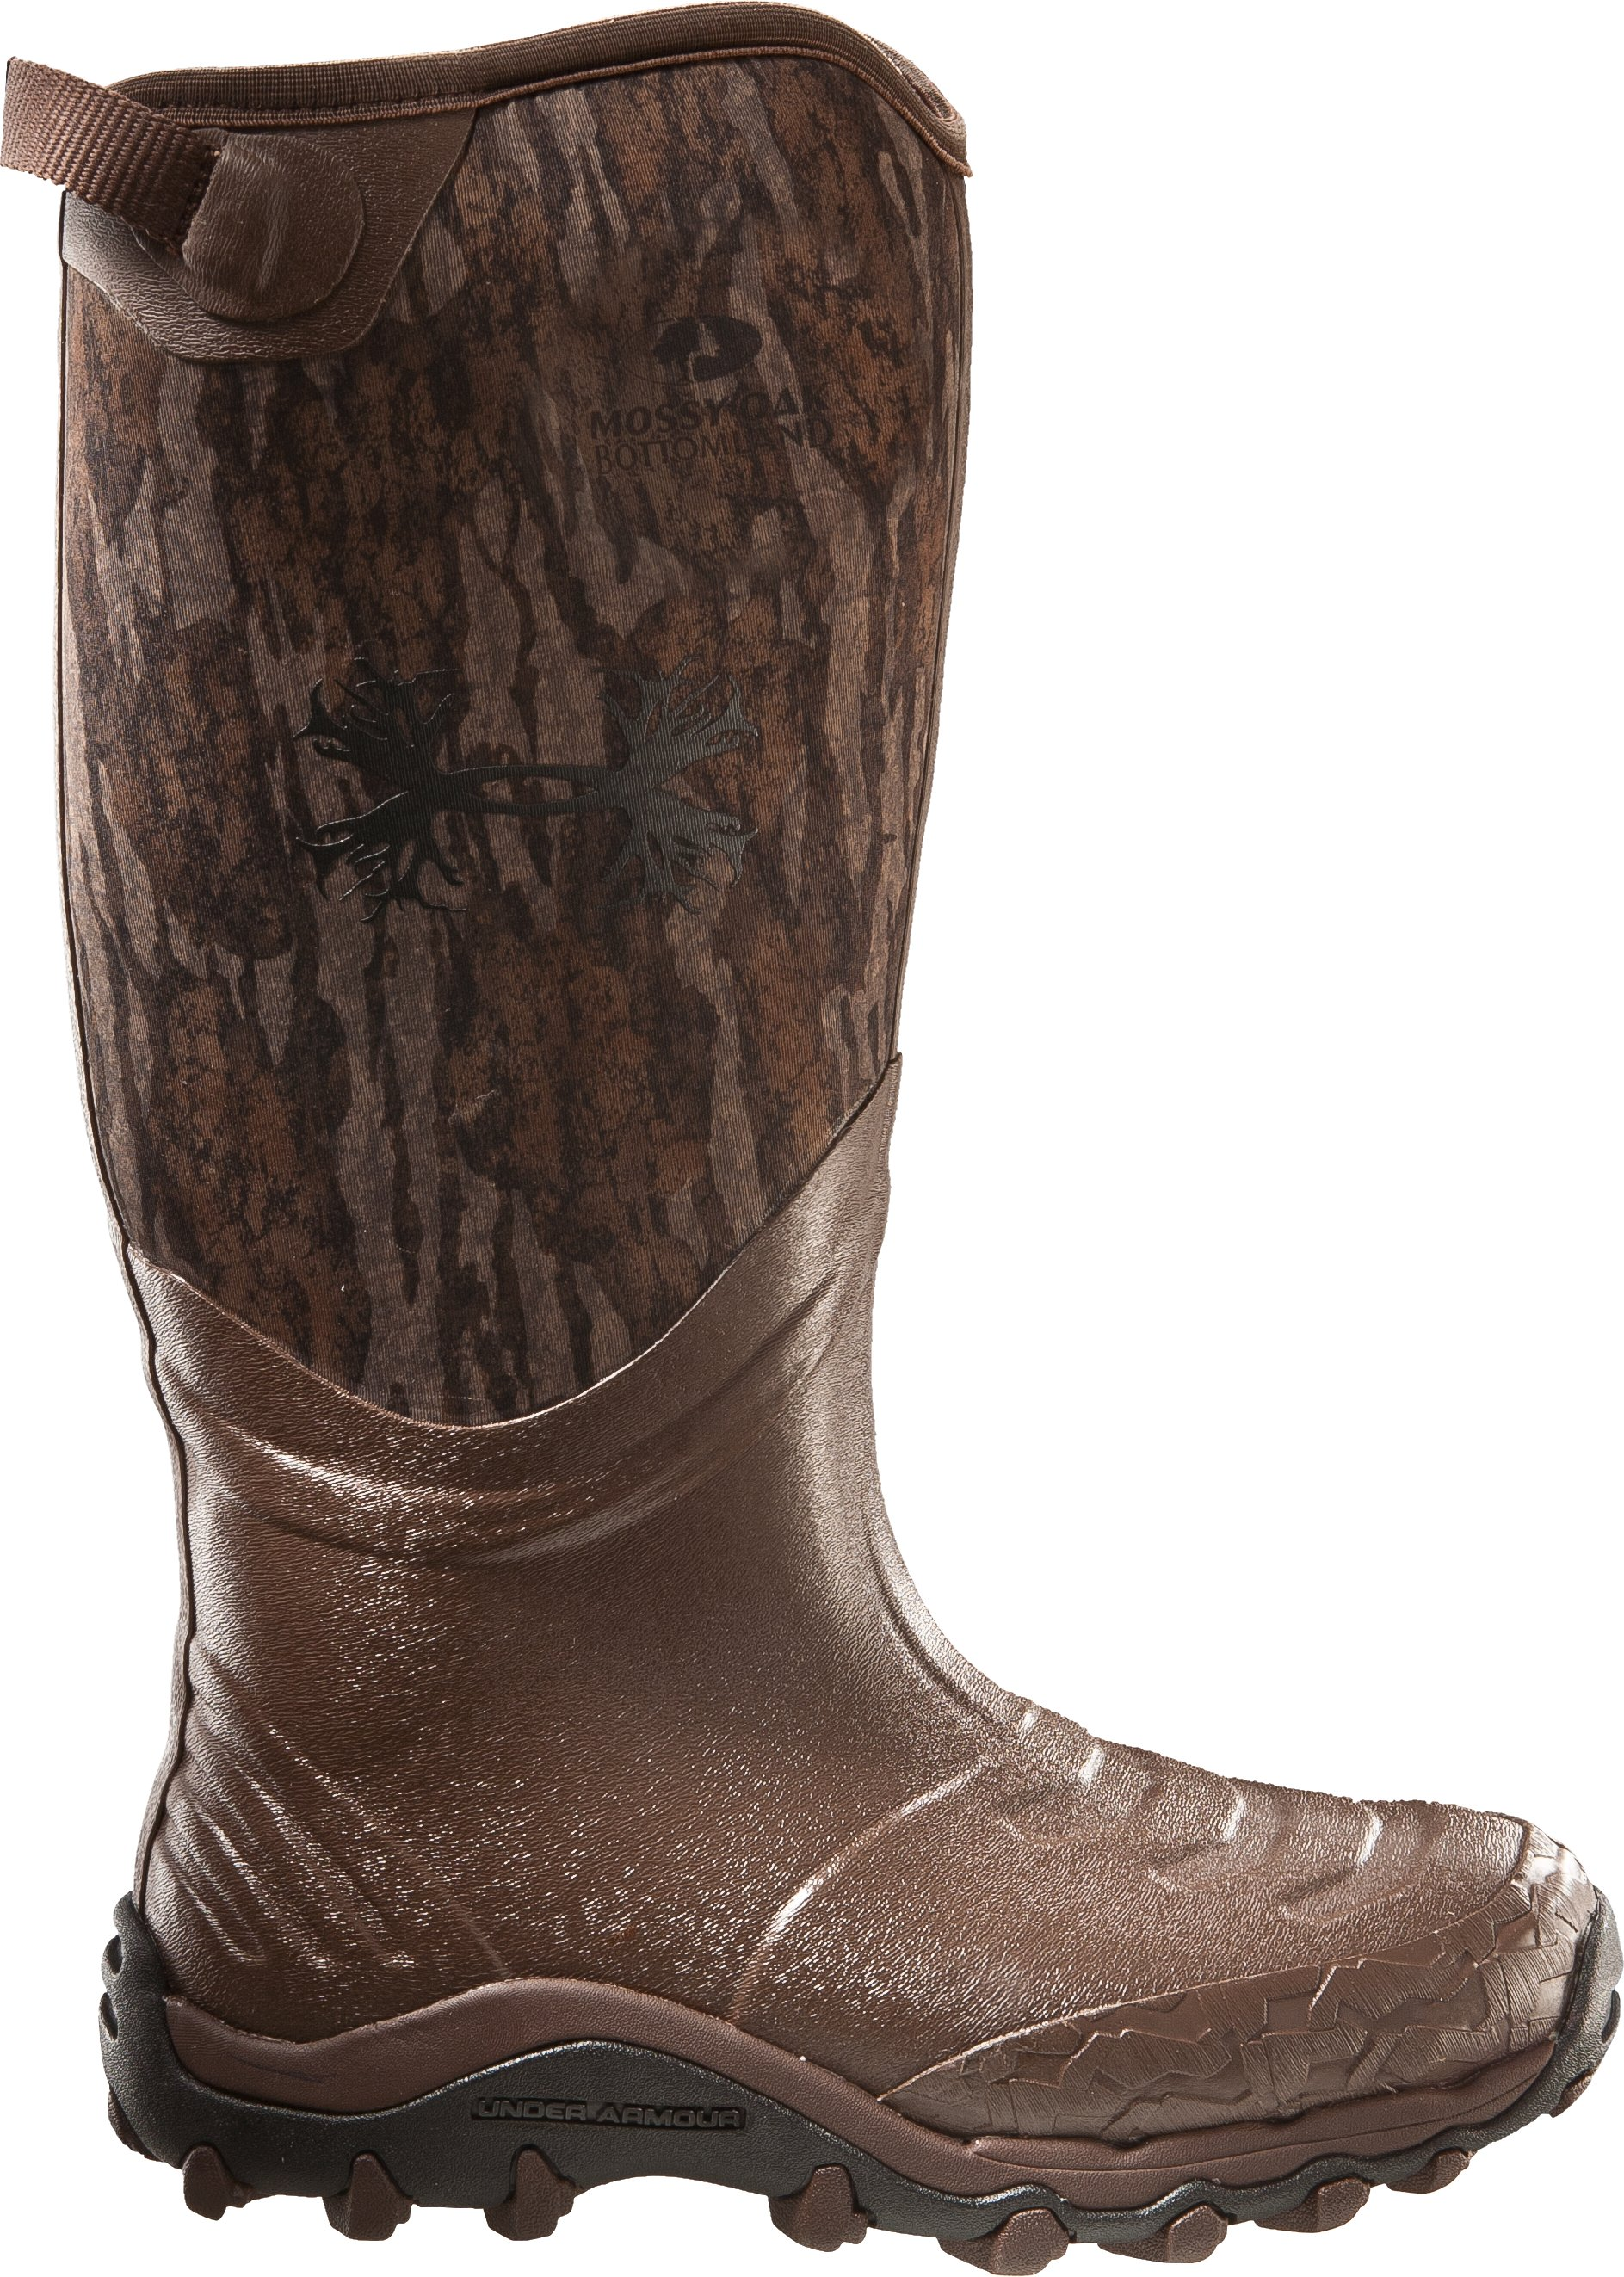 Men's UA H.A.W. Hunting Boots, Timber, zoomed image